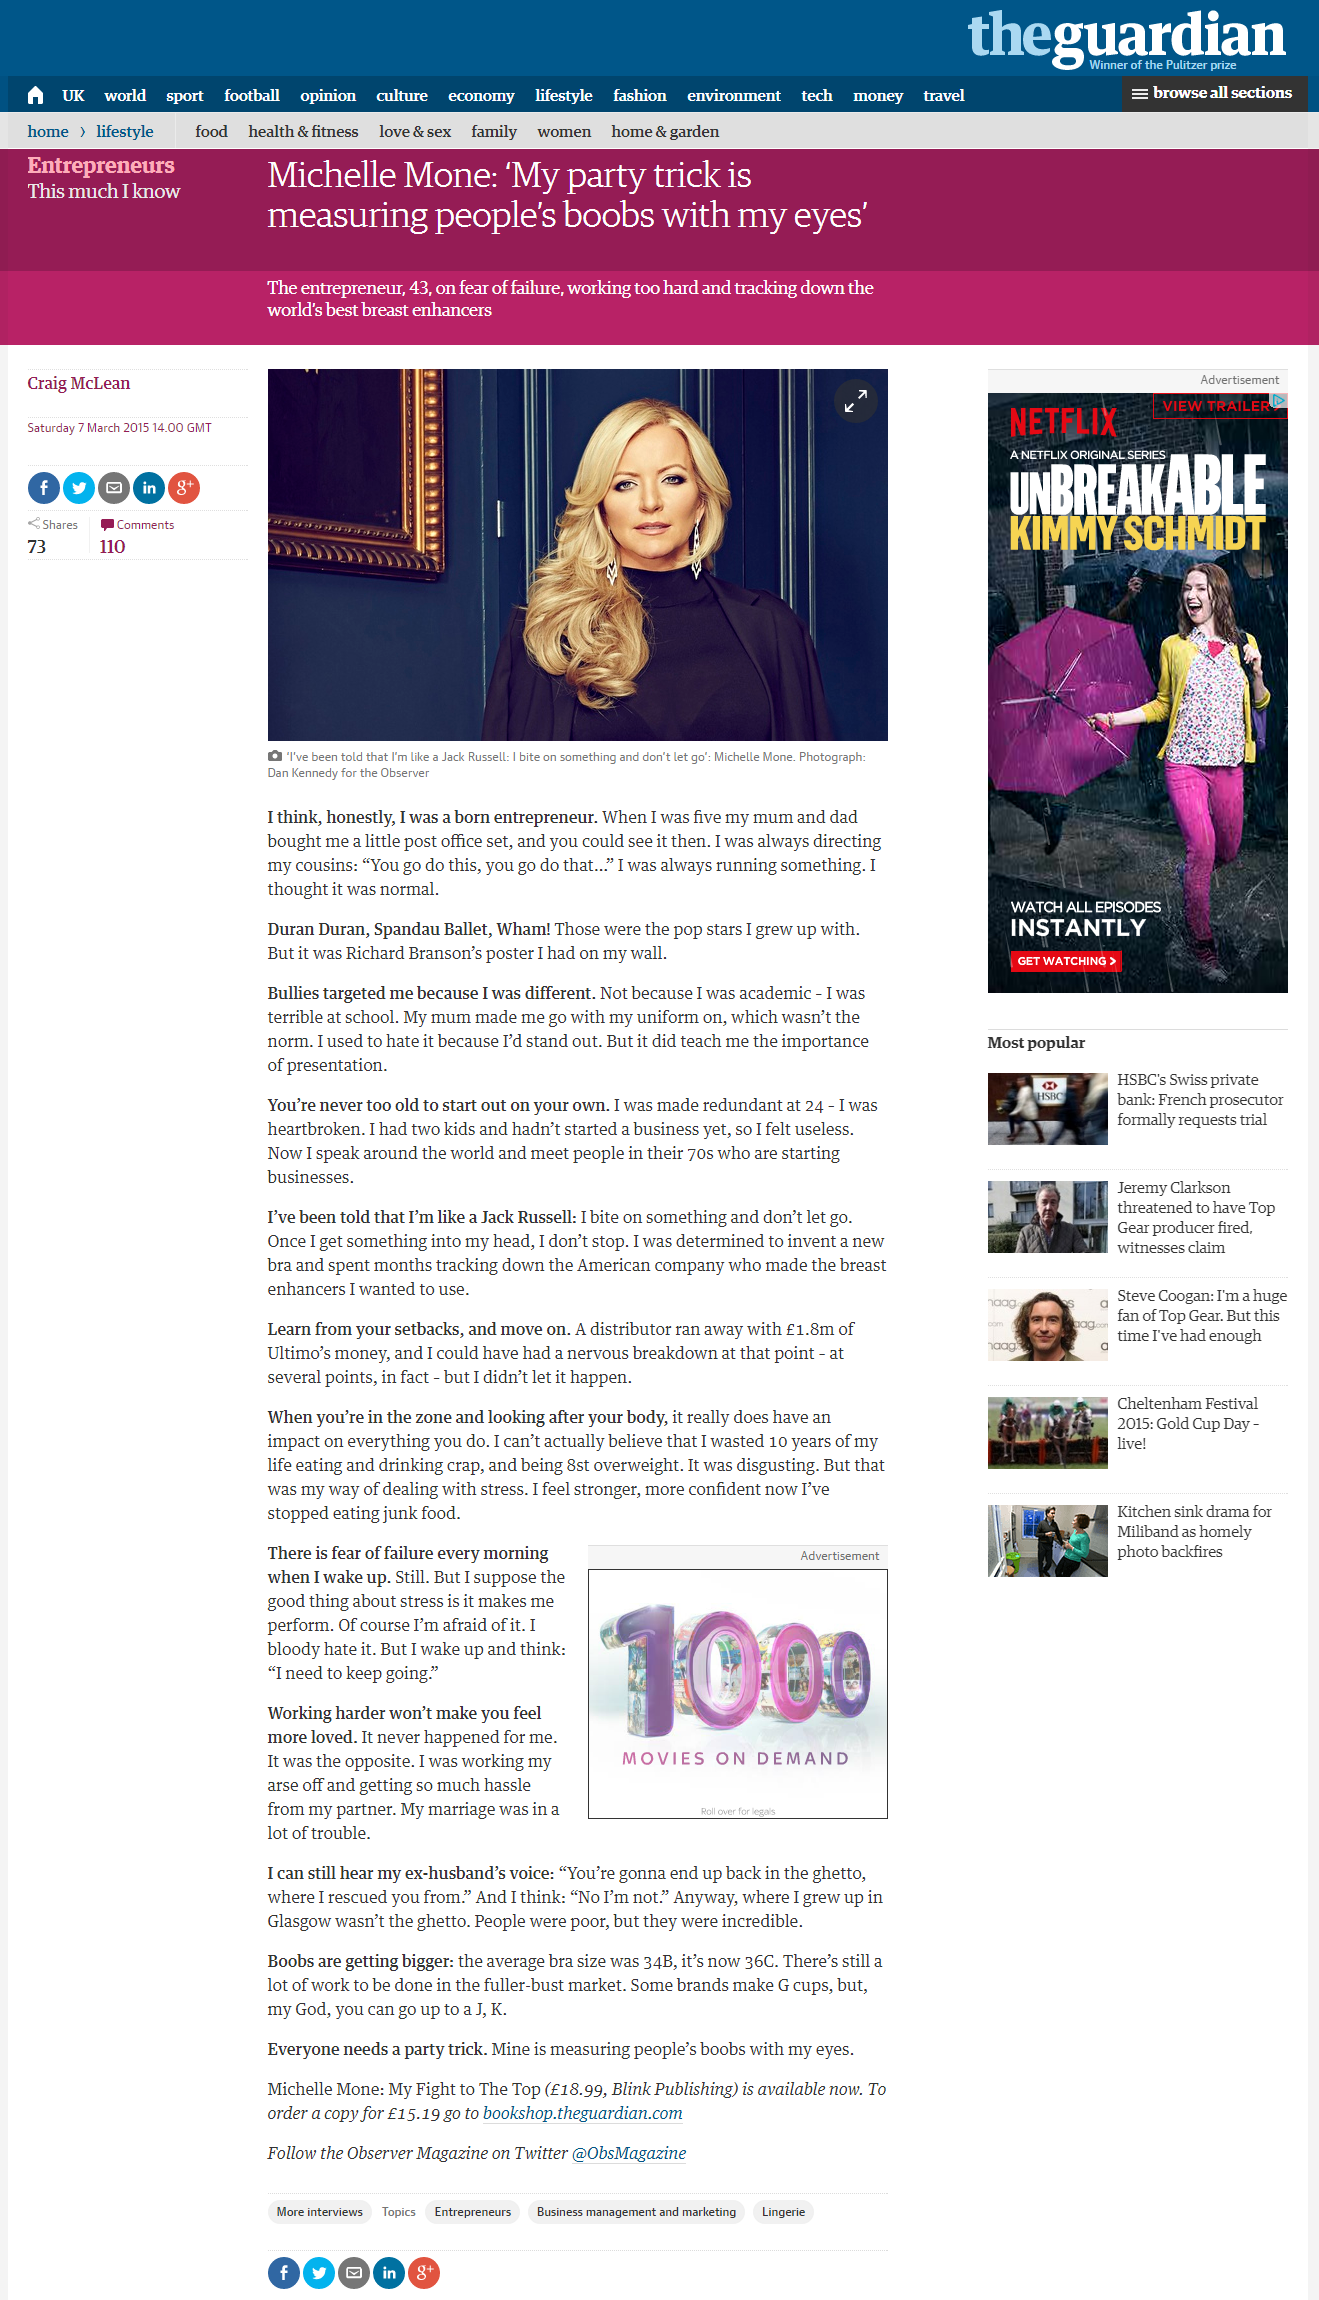 March2015_Michelle Mone_ 'My party trick is measu_theguardian